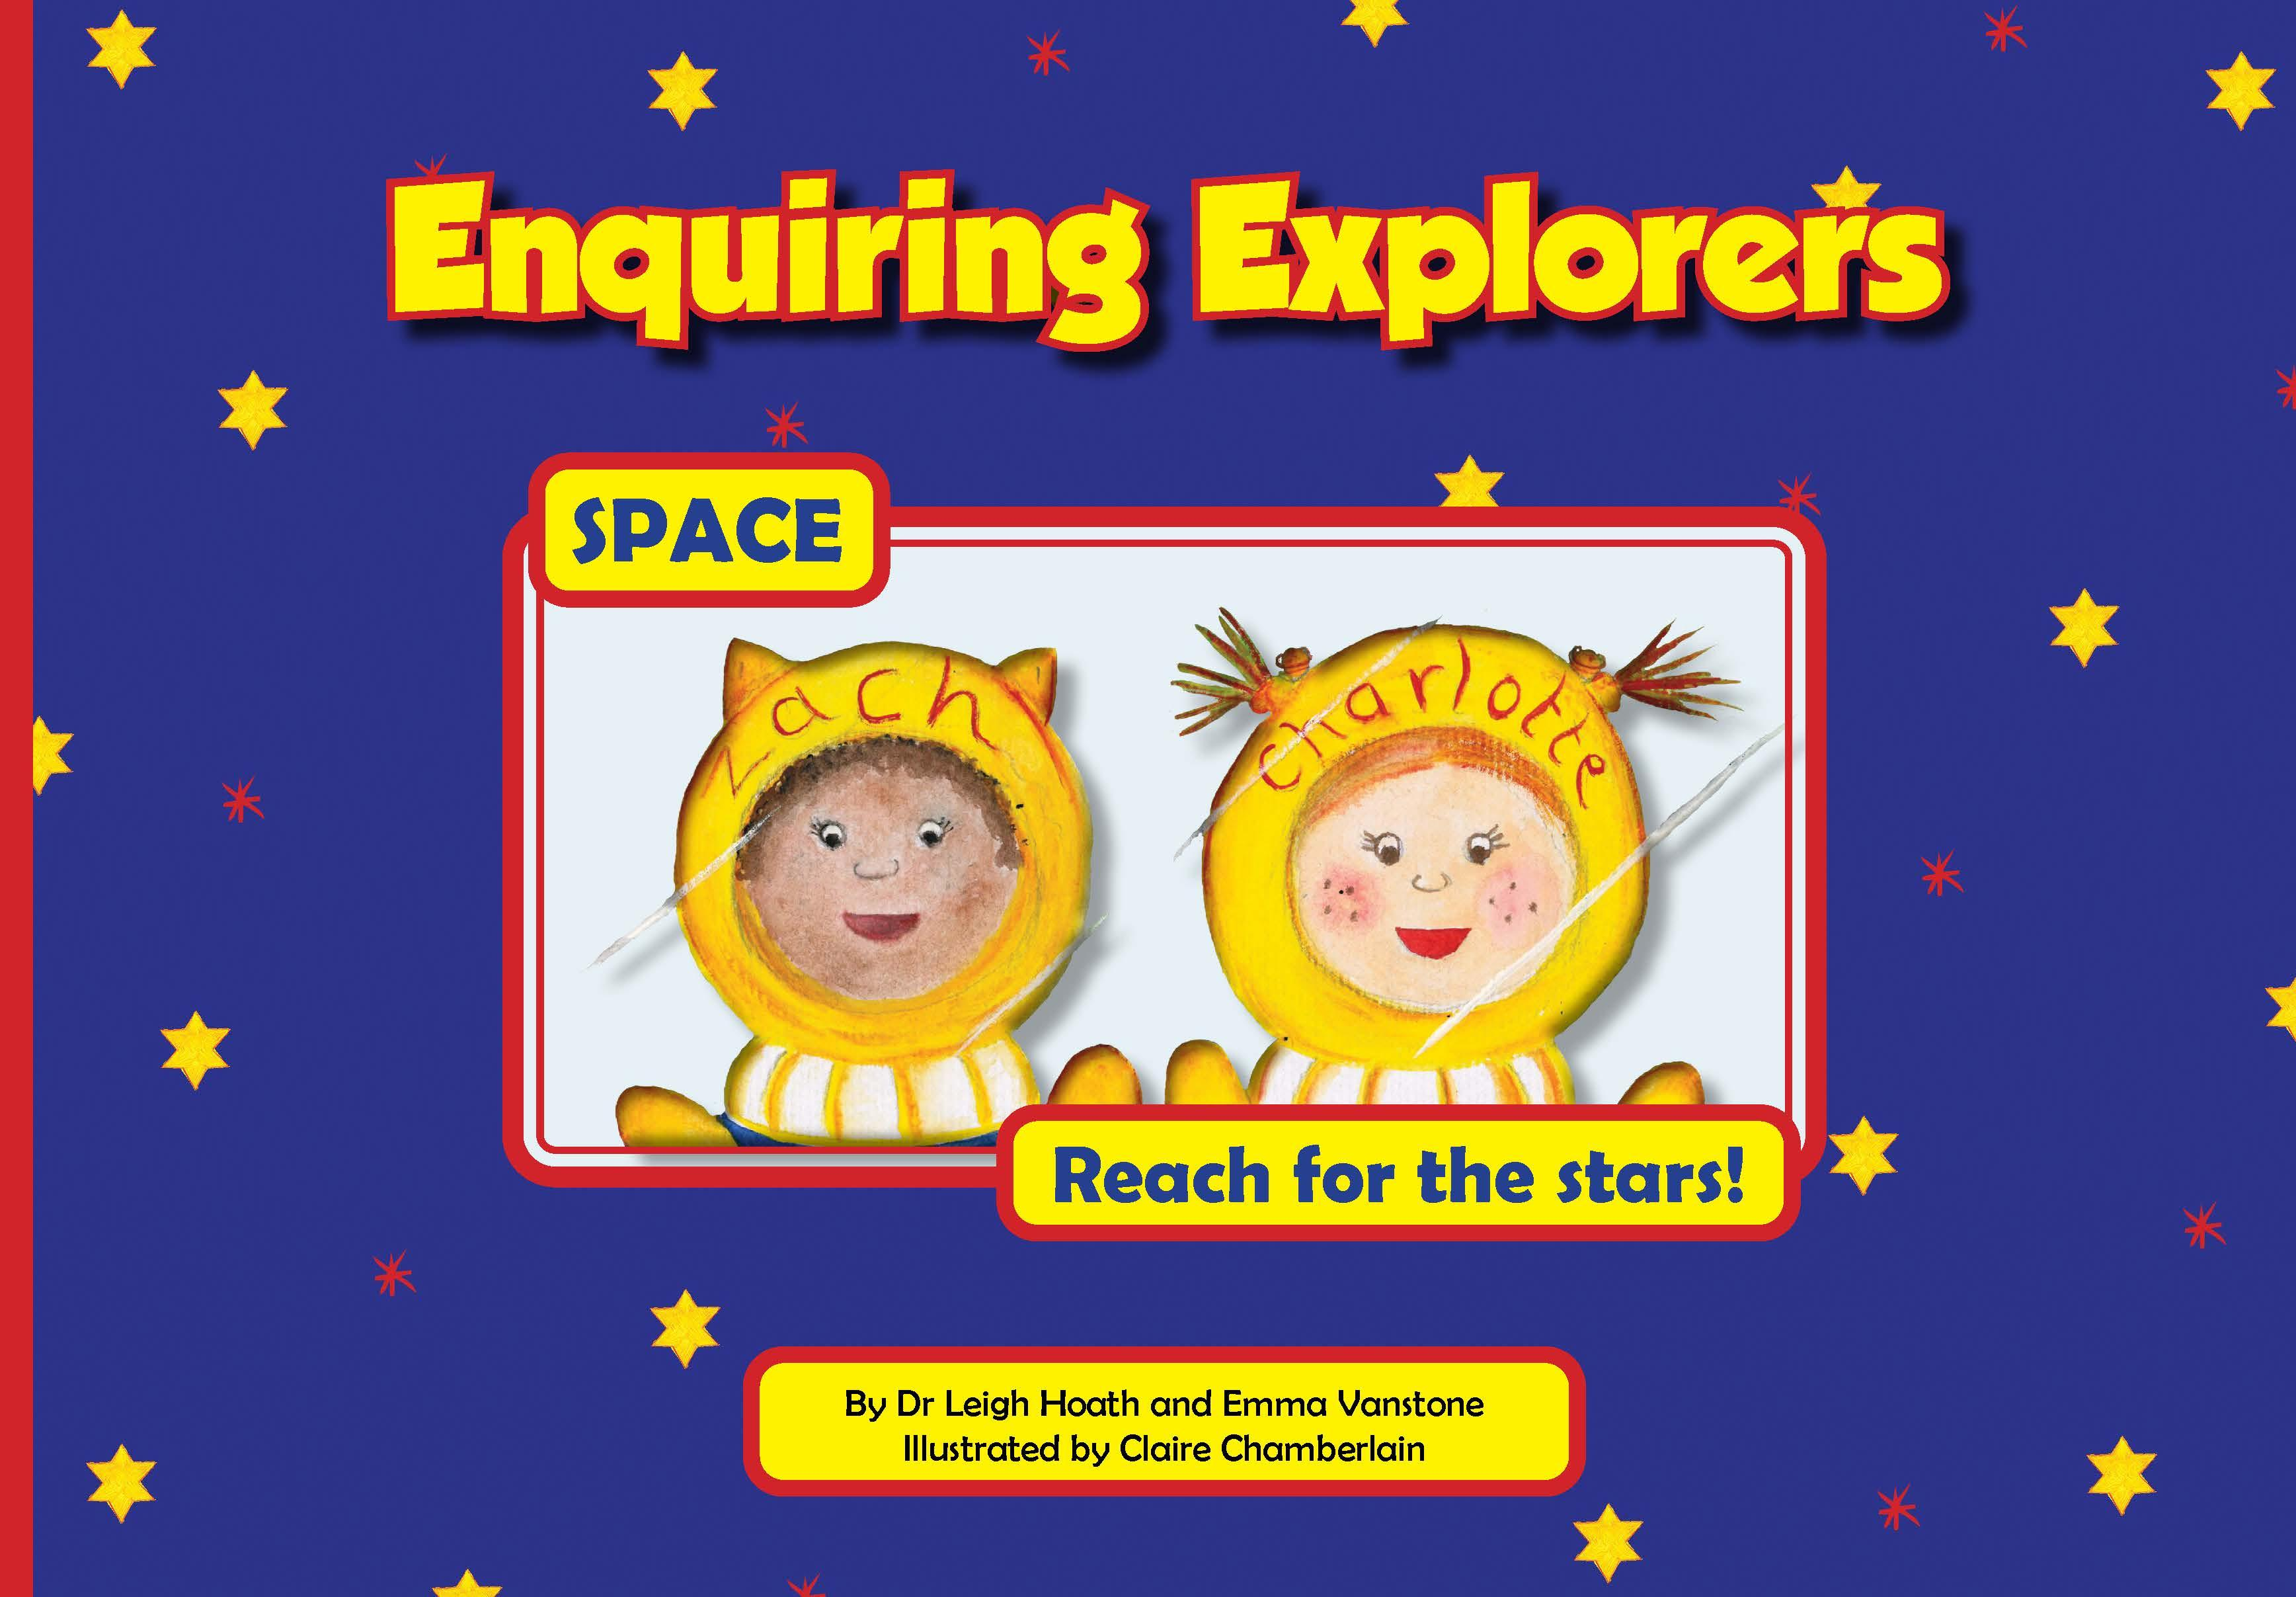 Enquiring Explorers – Space cover page